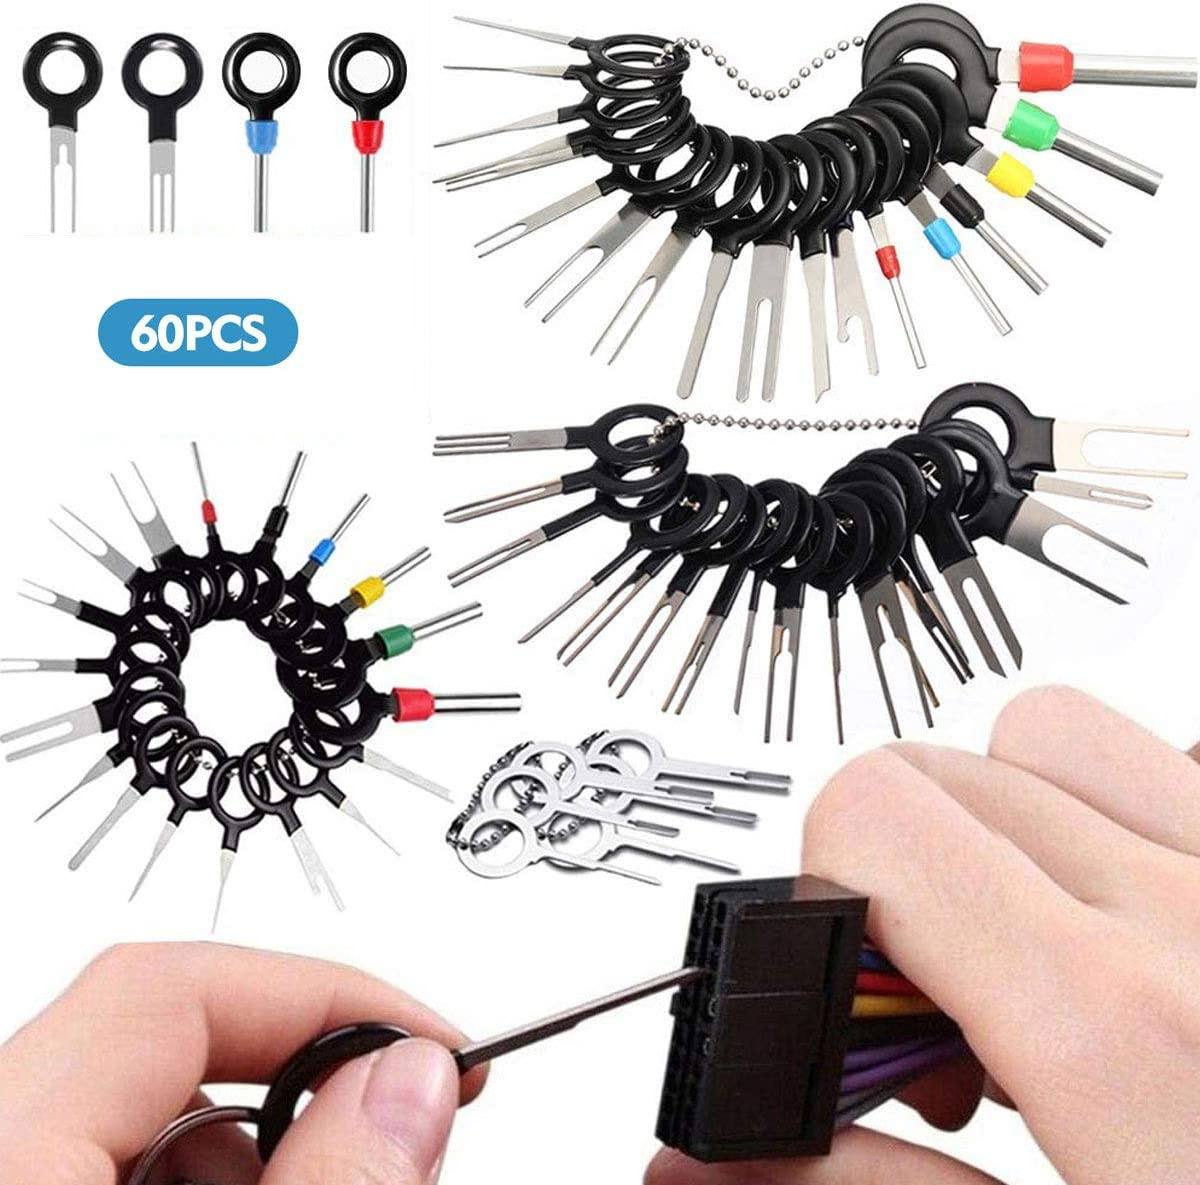 70Pcs Set Pin Ejector Wire Kit Extractor Auto Terminal Removal Connector Puller